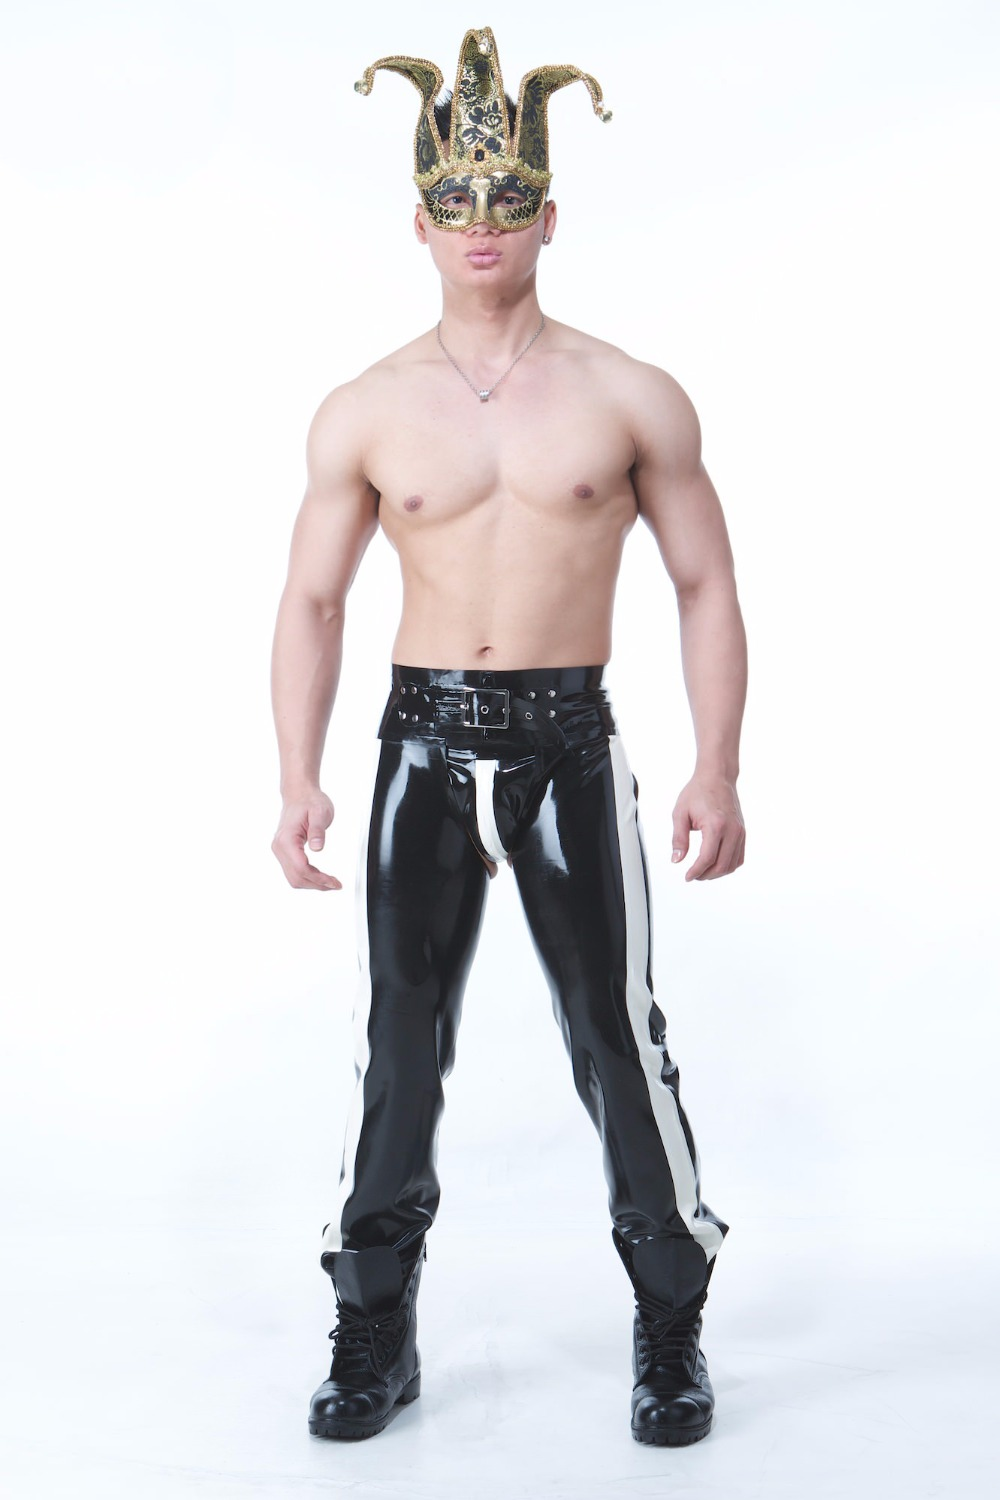 Pantalon de sport en Latex avec ceinture et slips en Latex Sexy pantalon noir en Latex